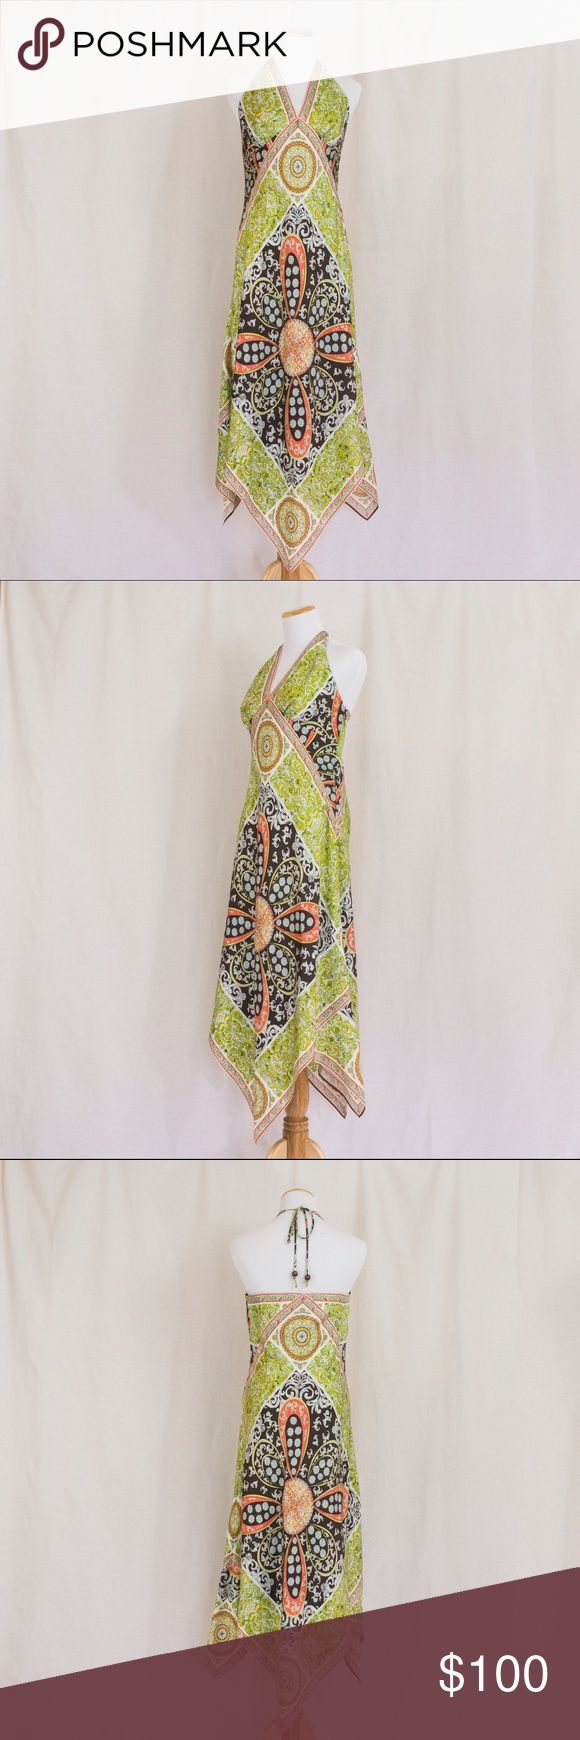 100% Silk Handkerchief Halter Dress Such a beautiful dress, and in great condition. 100% Silk with a beautiful design and handkerchief style hem line. Side zipper and tie halter neck. This dress is so lovely! Laundry by Shelli Segal Dresses Maxi